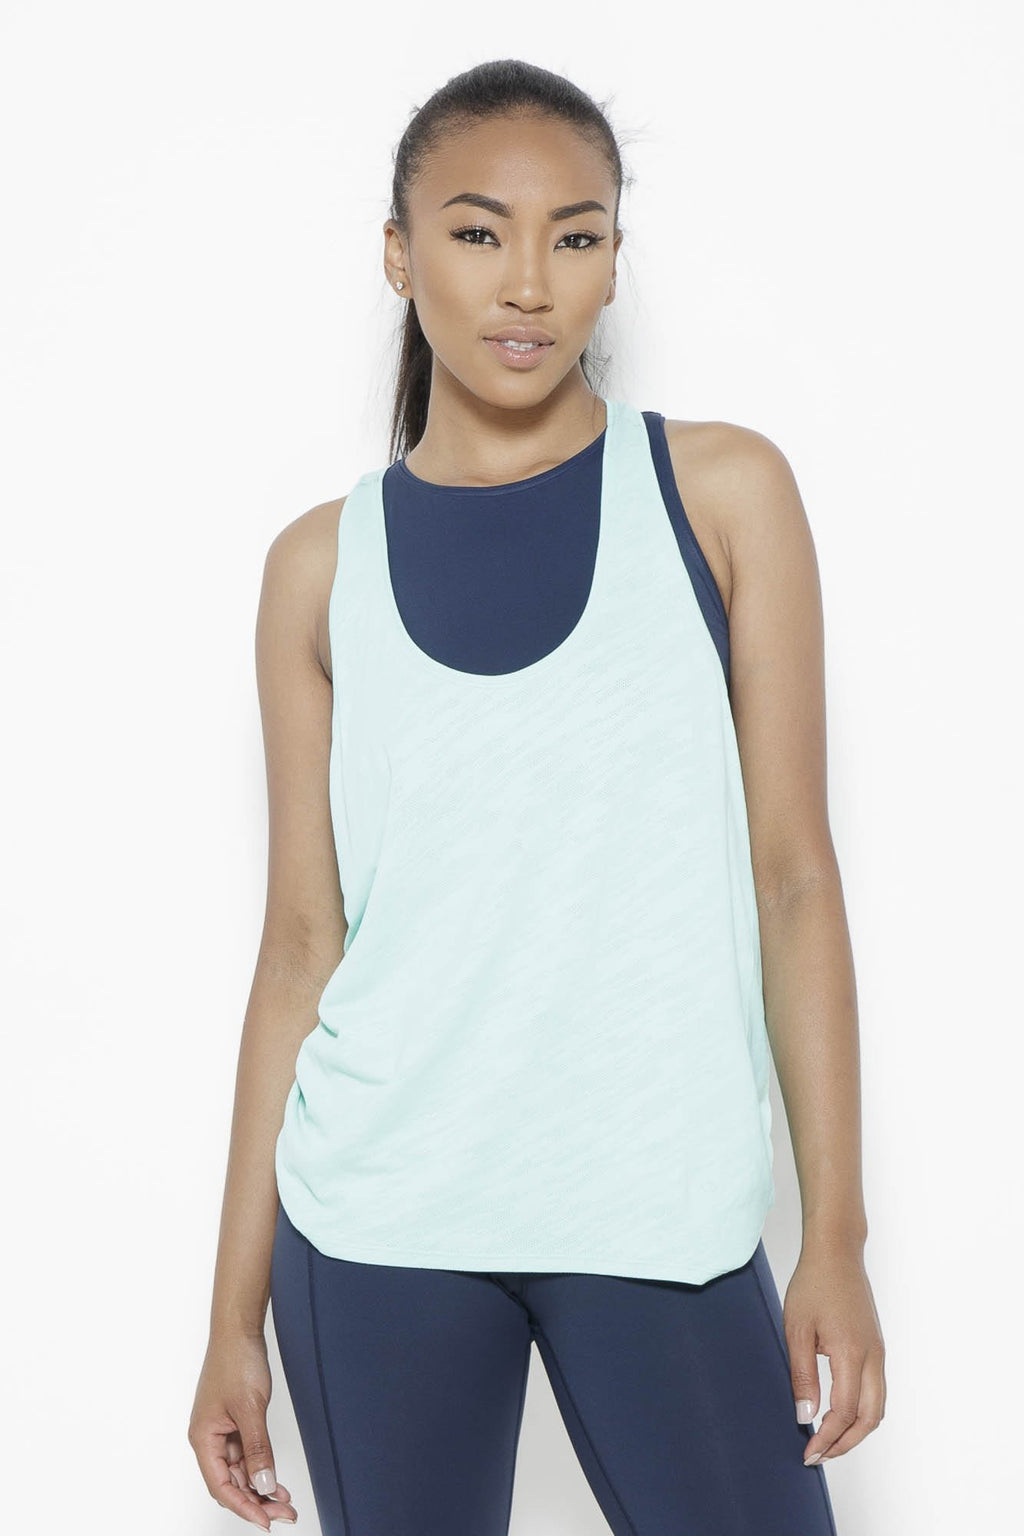 Cool Breeze-Tank Top Clothing Fair Shade OS Turquoise Green 100% Nylon SORBTEK